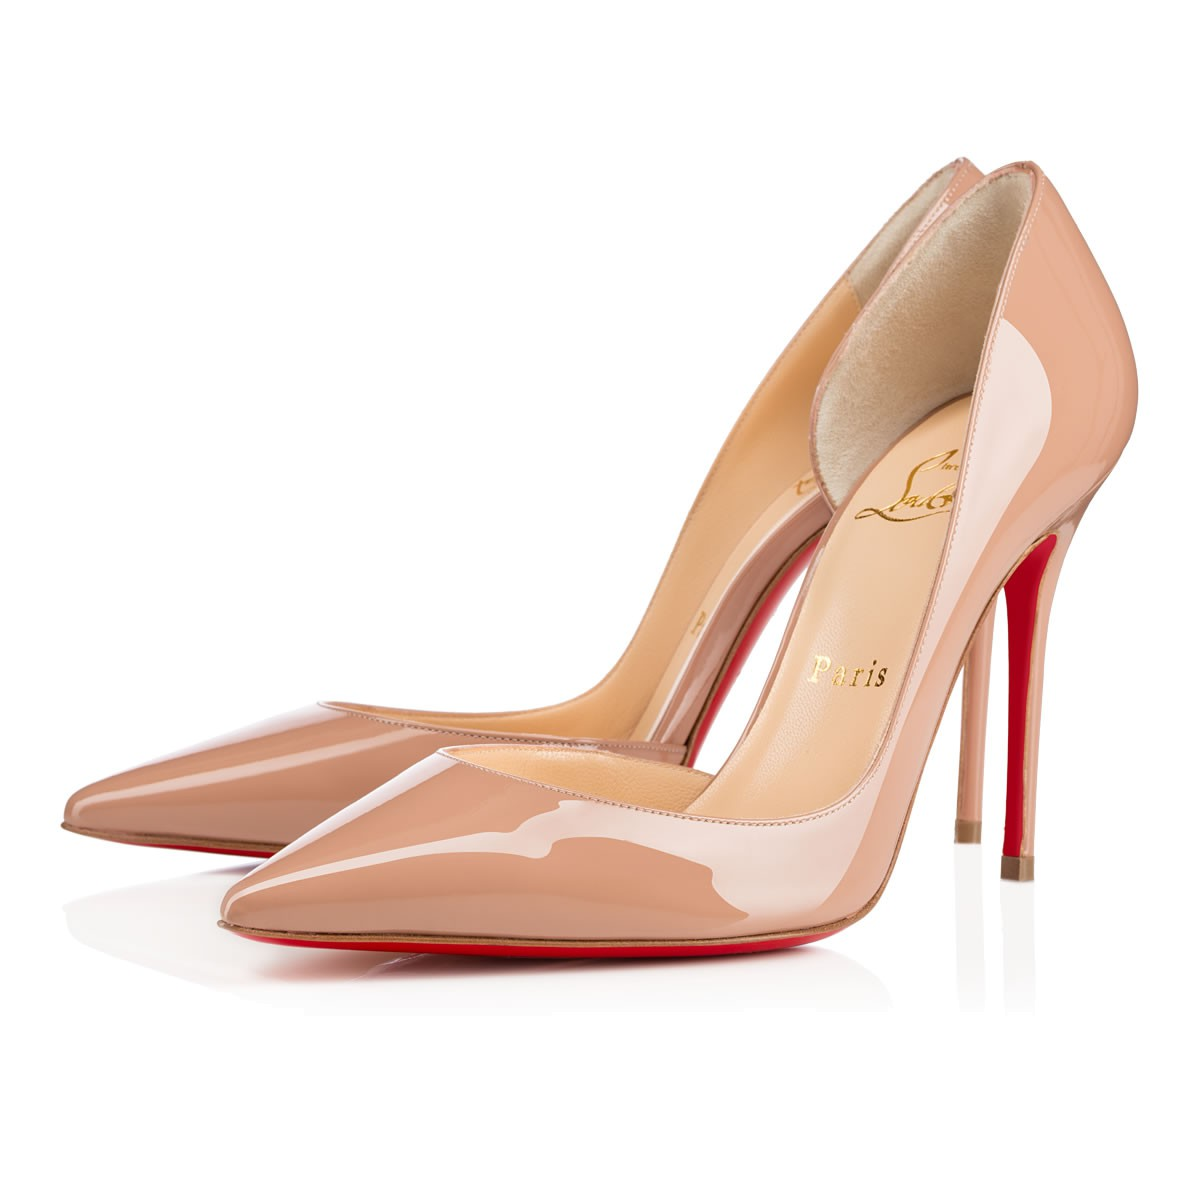 iriza 100 nude patent leather women shoes christian louboutin rh us christianlouboutin com christian louboutin shoes online christian louboutin shoes femme